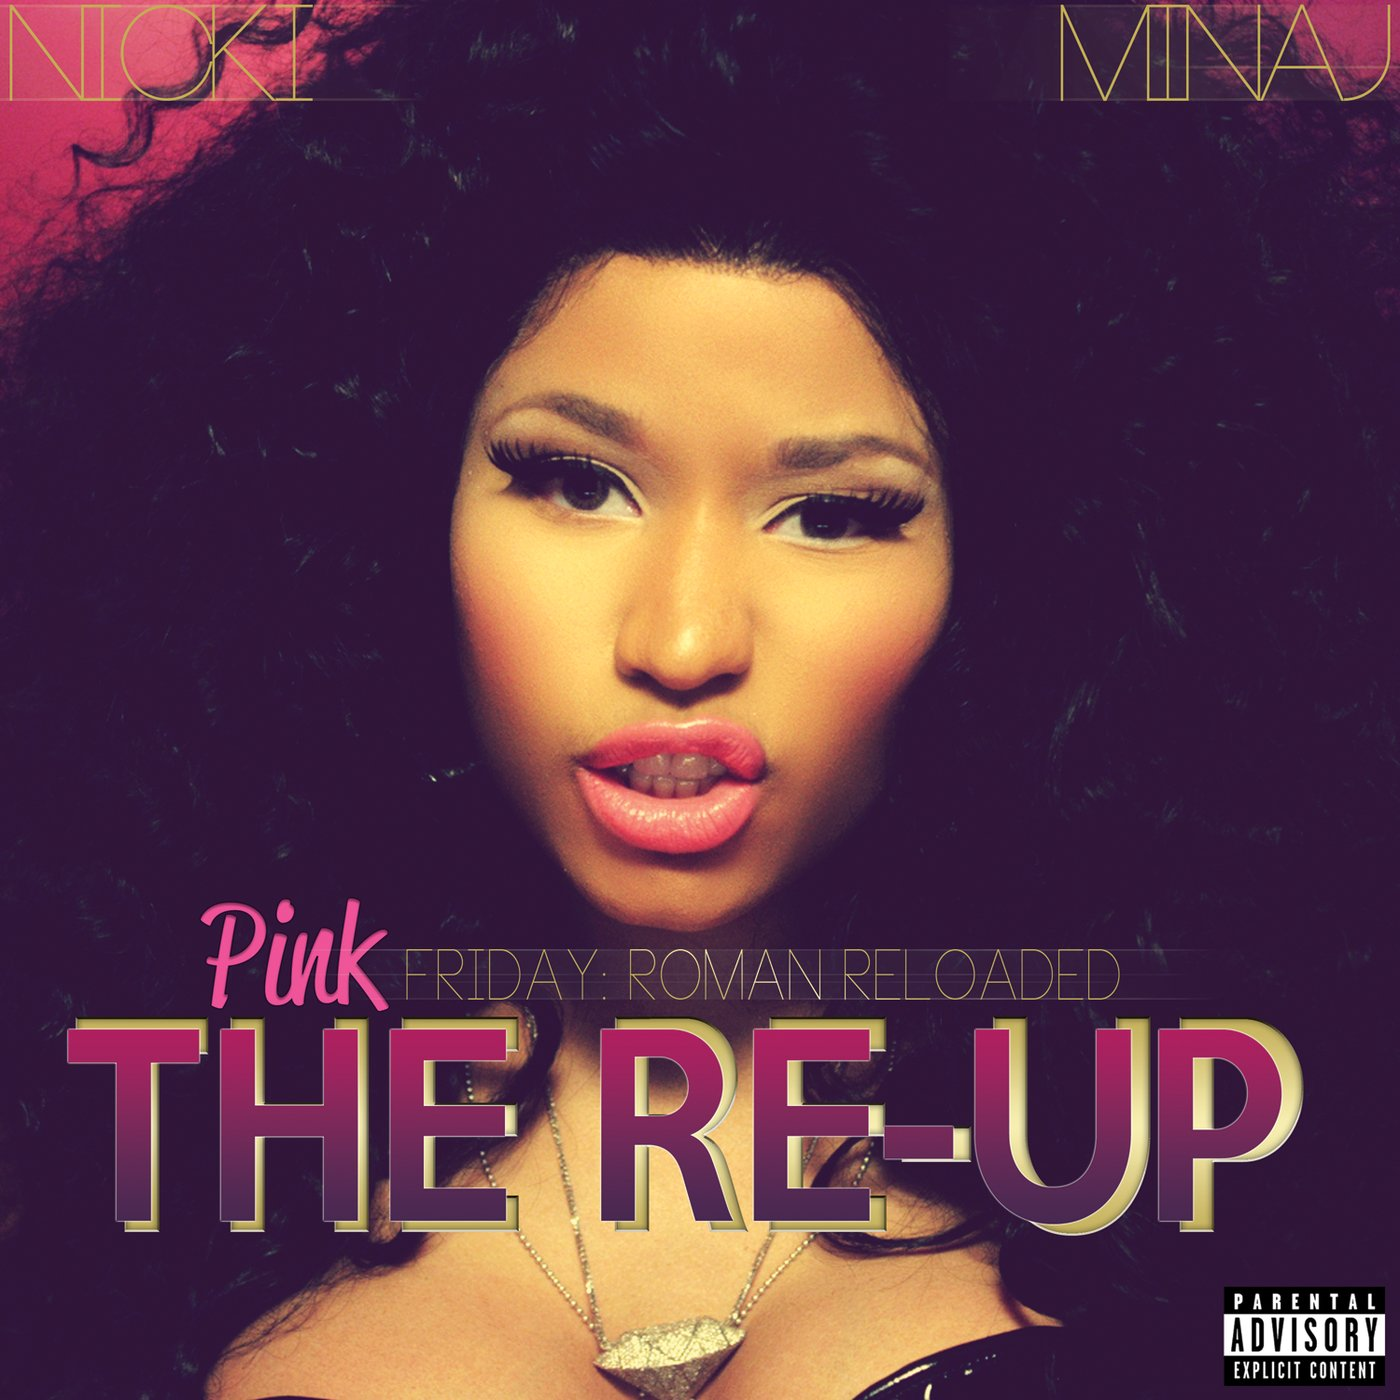 CD : Nicki Minaj - Pink Friday: Roman Reloaded Re-up [2CD/ 1DVD] [Explicit Content] (With DVD, 3 Disc)